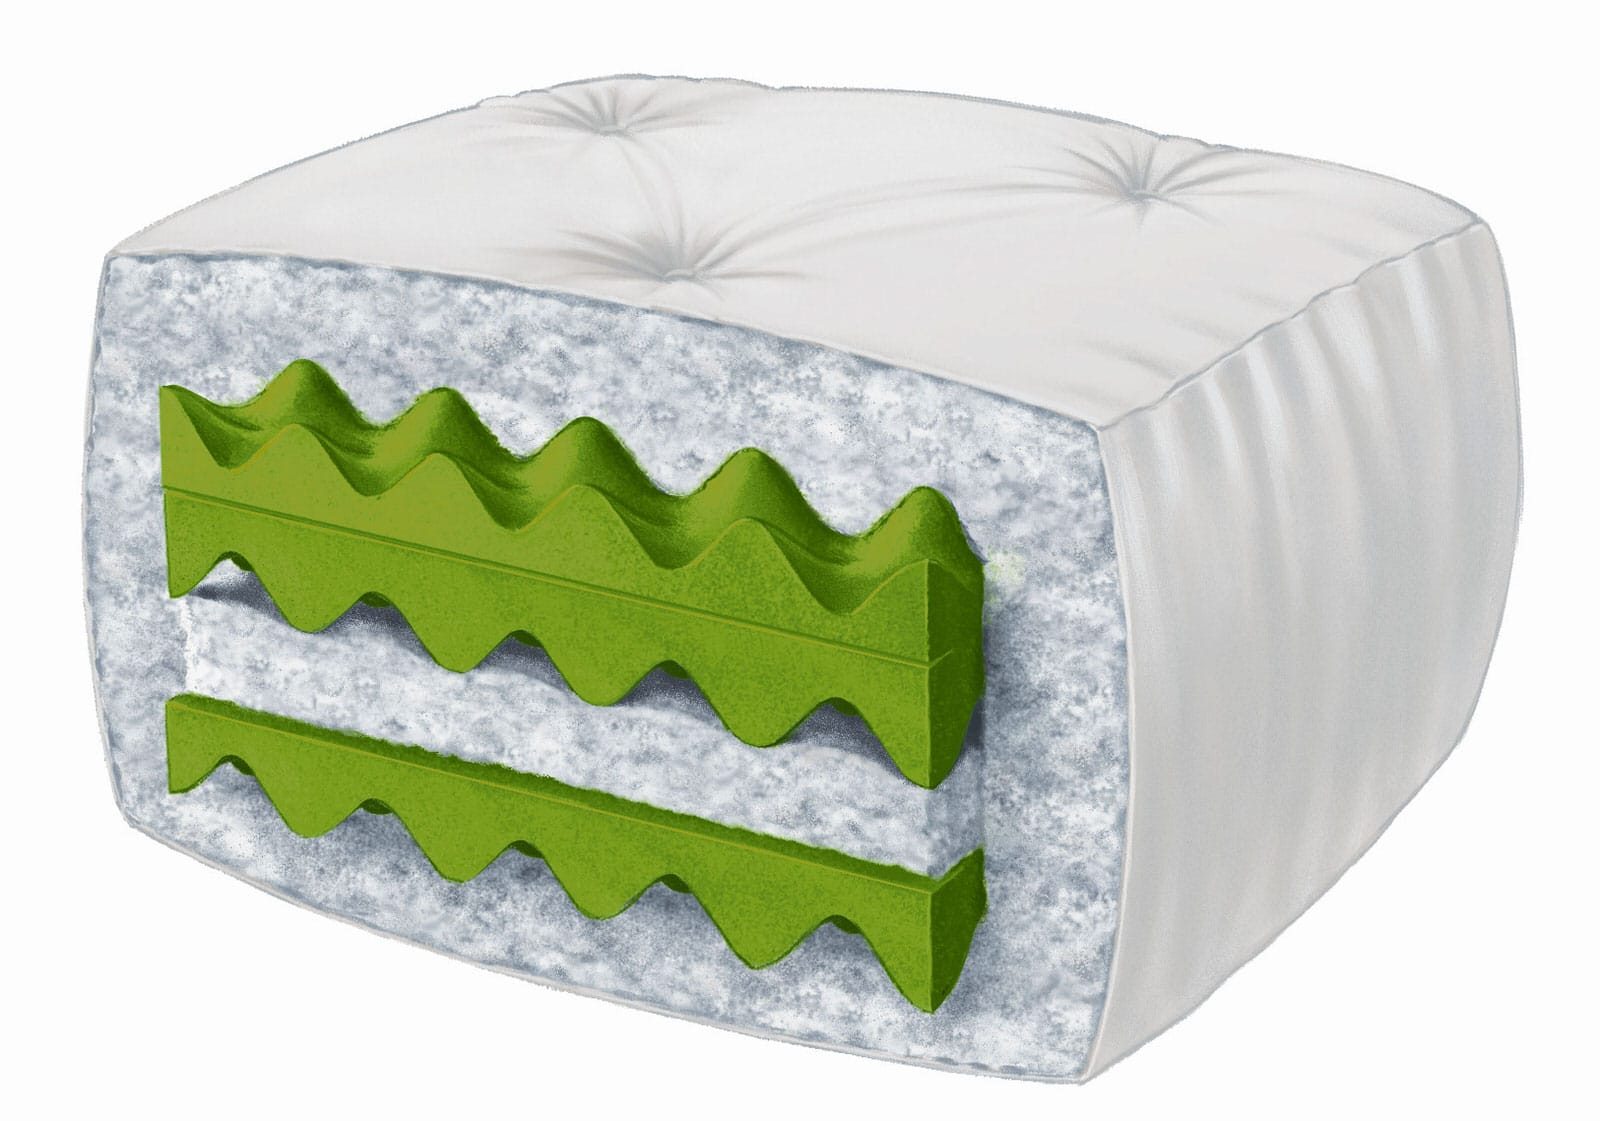 futons mattress sleep friendly of cotton healthy all class new eco organic king best in sizes the awesome memory bedding latex foam top mattresses green without natural futon chemicals